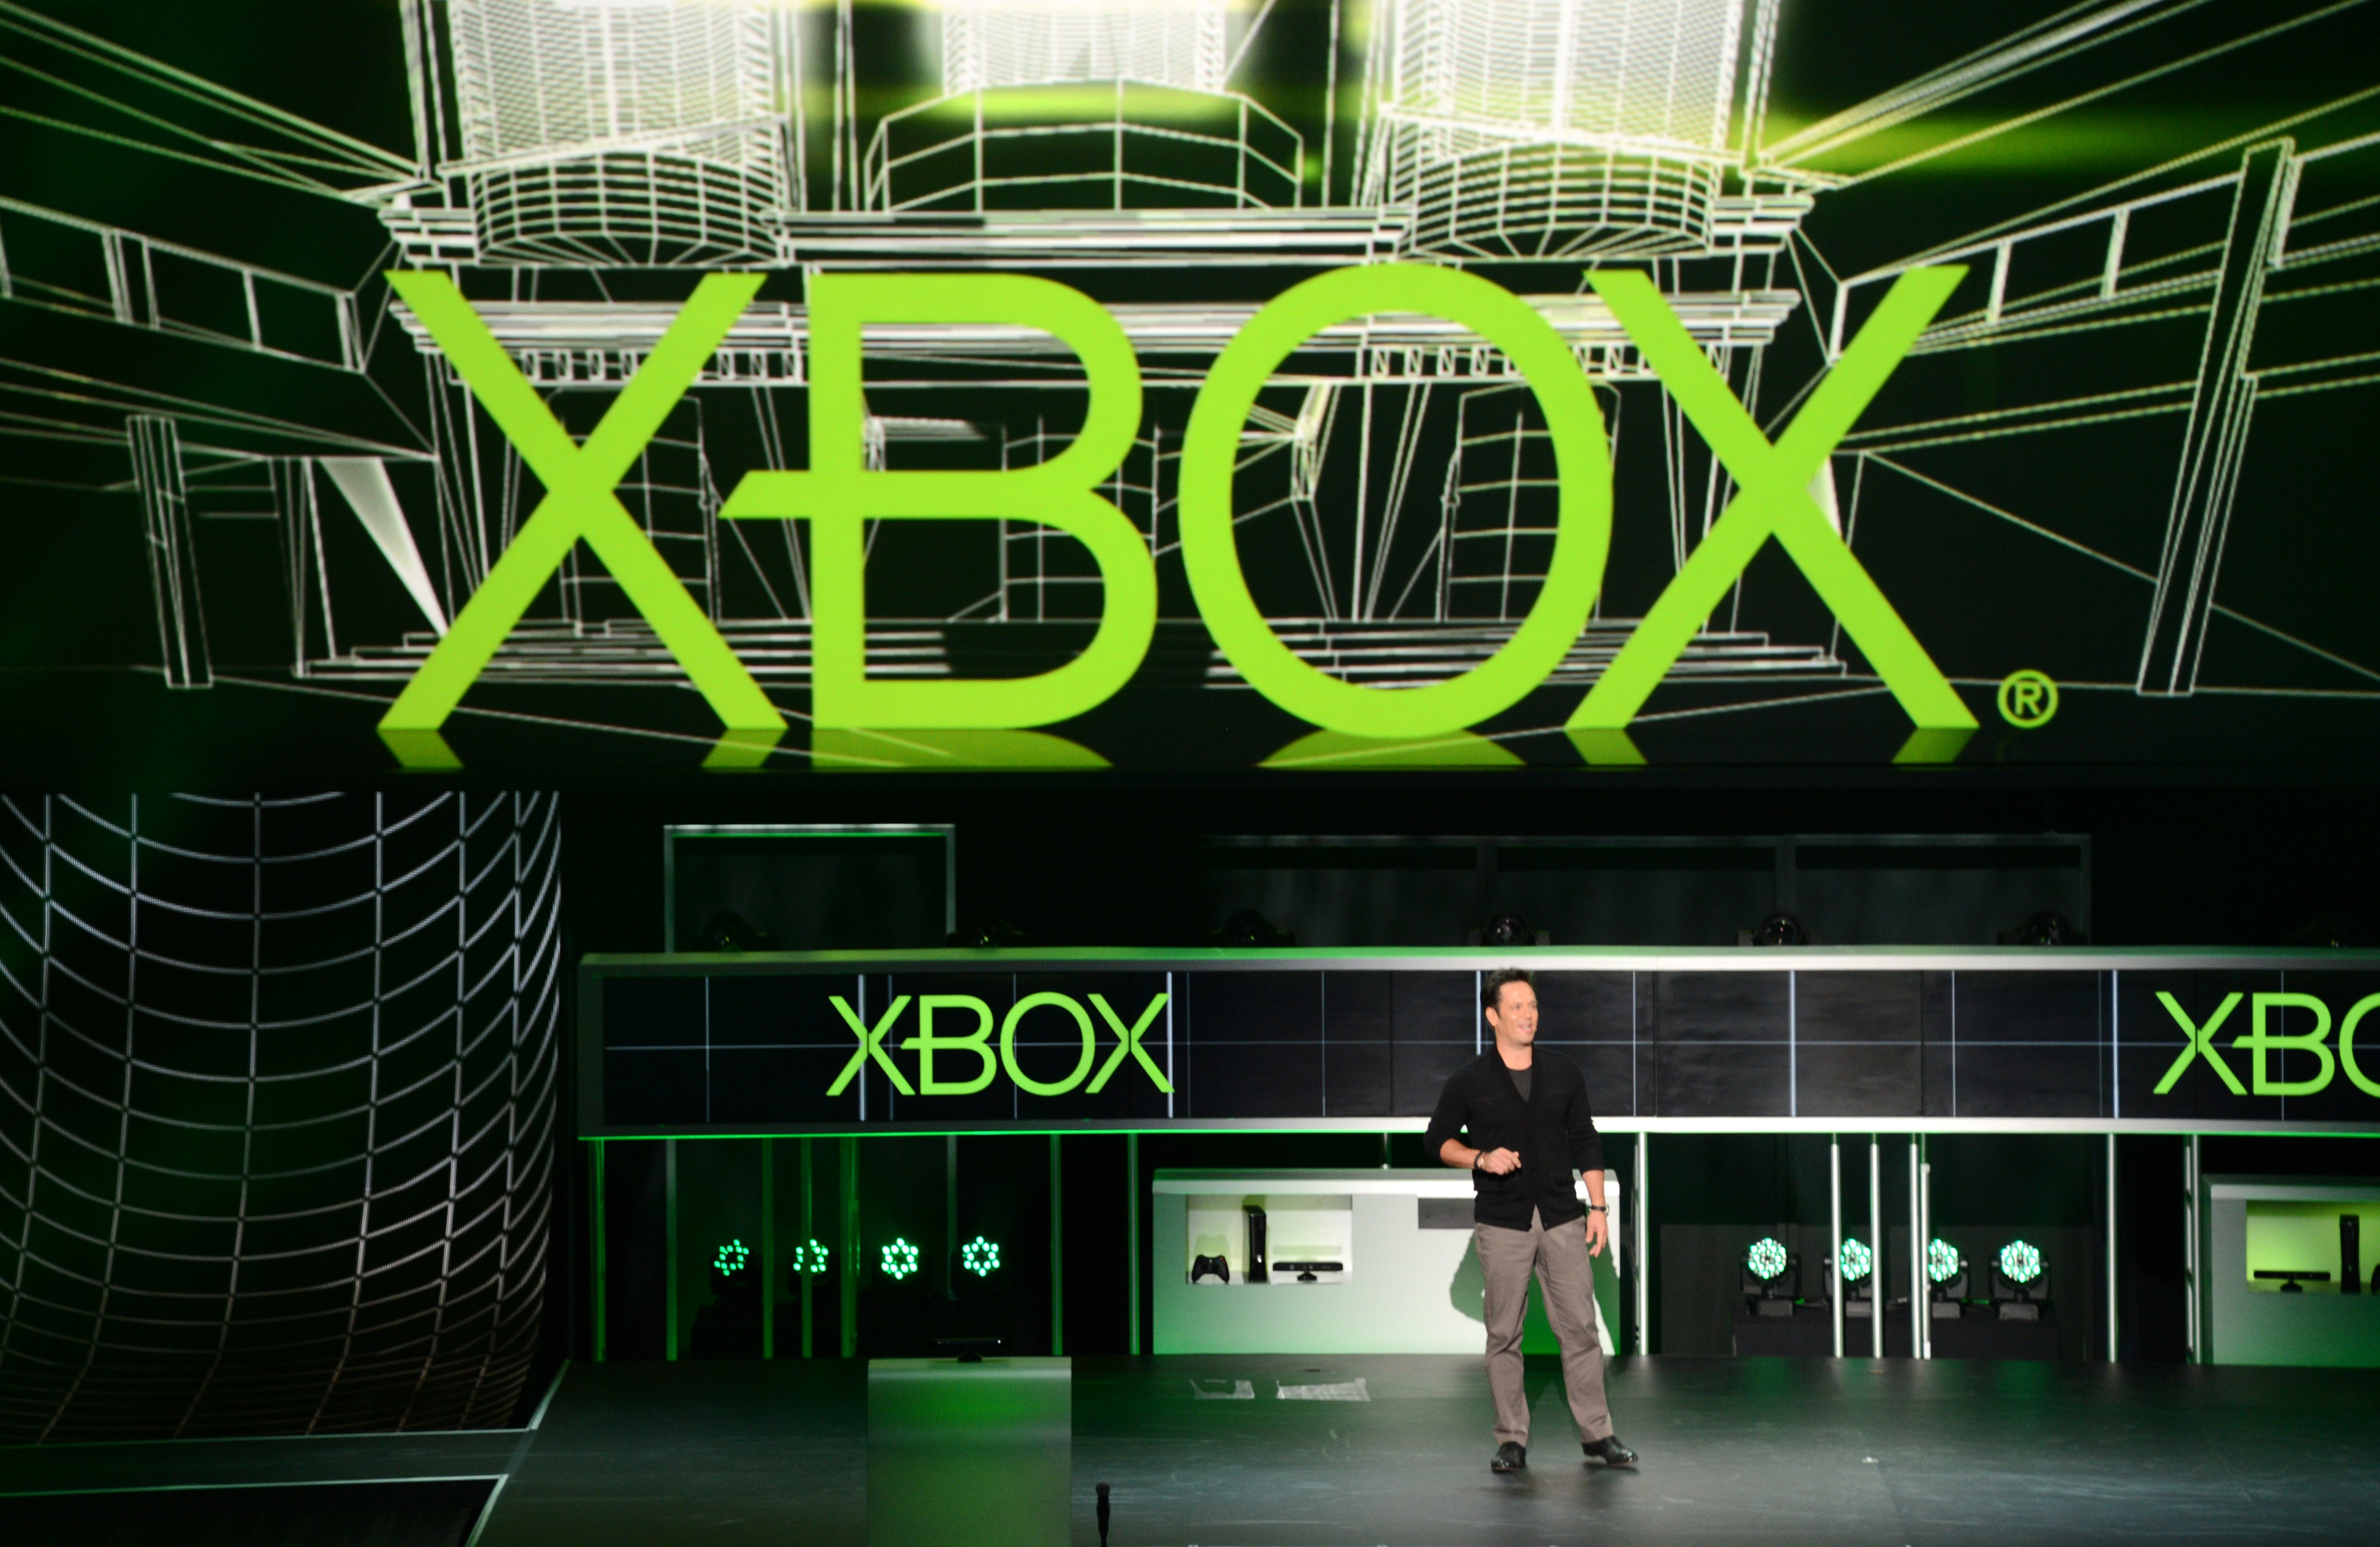 Corporate Vice President of Microsoft Studios Phil Spencer speaks at the Microsoft Xbox E3 2012 media briefing in Los Angeles on June 4, 2012.